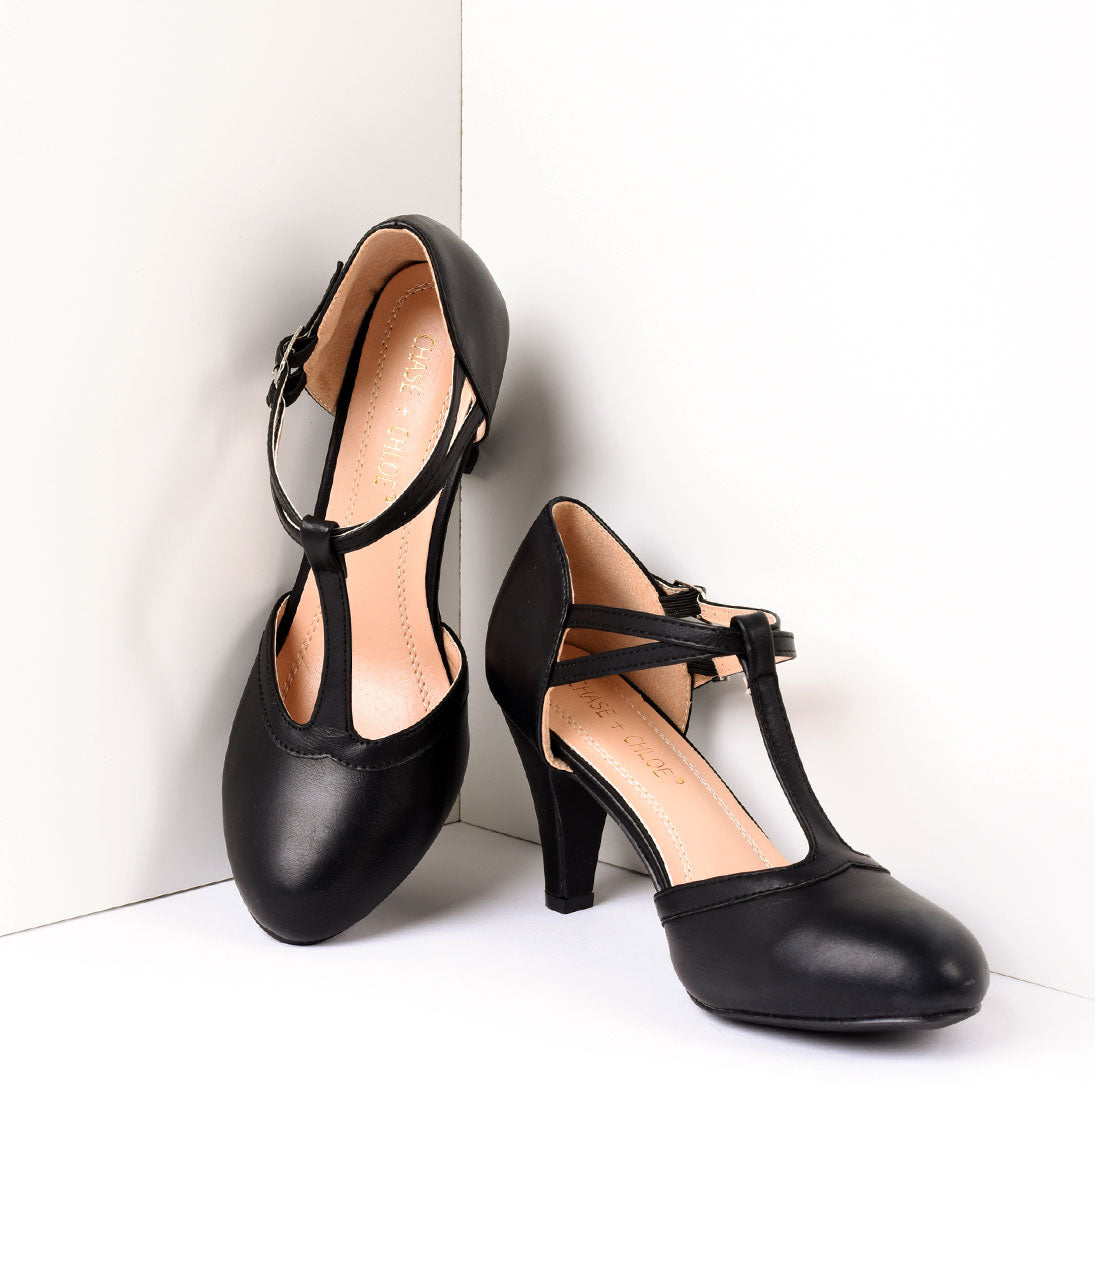 Vintage Style Shoes, Vintage Inspired Shoes Vintage Style Black Leatherette Round Toe T-Strap Heels $48.00 AT vintagedancer.com